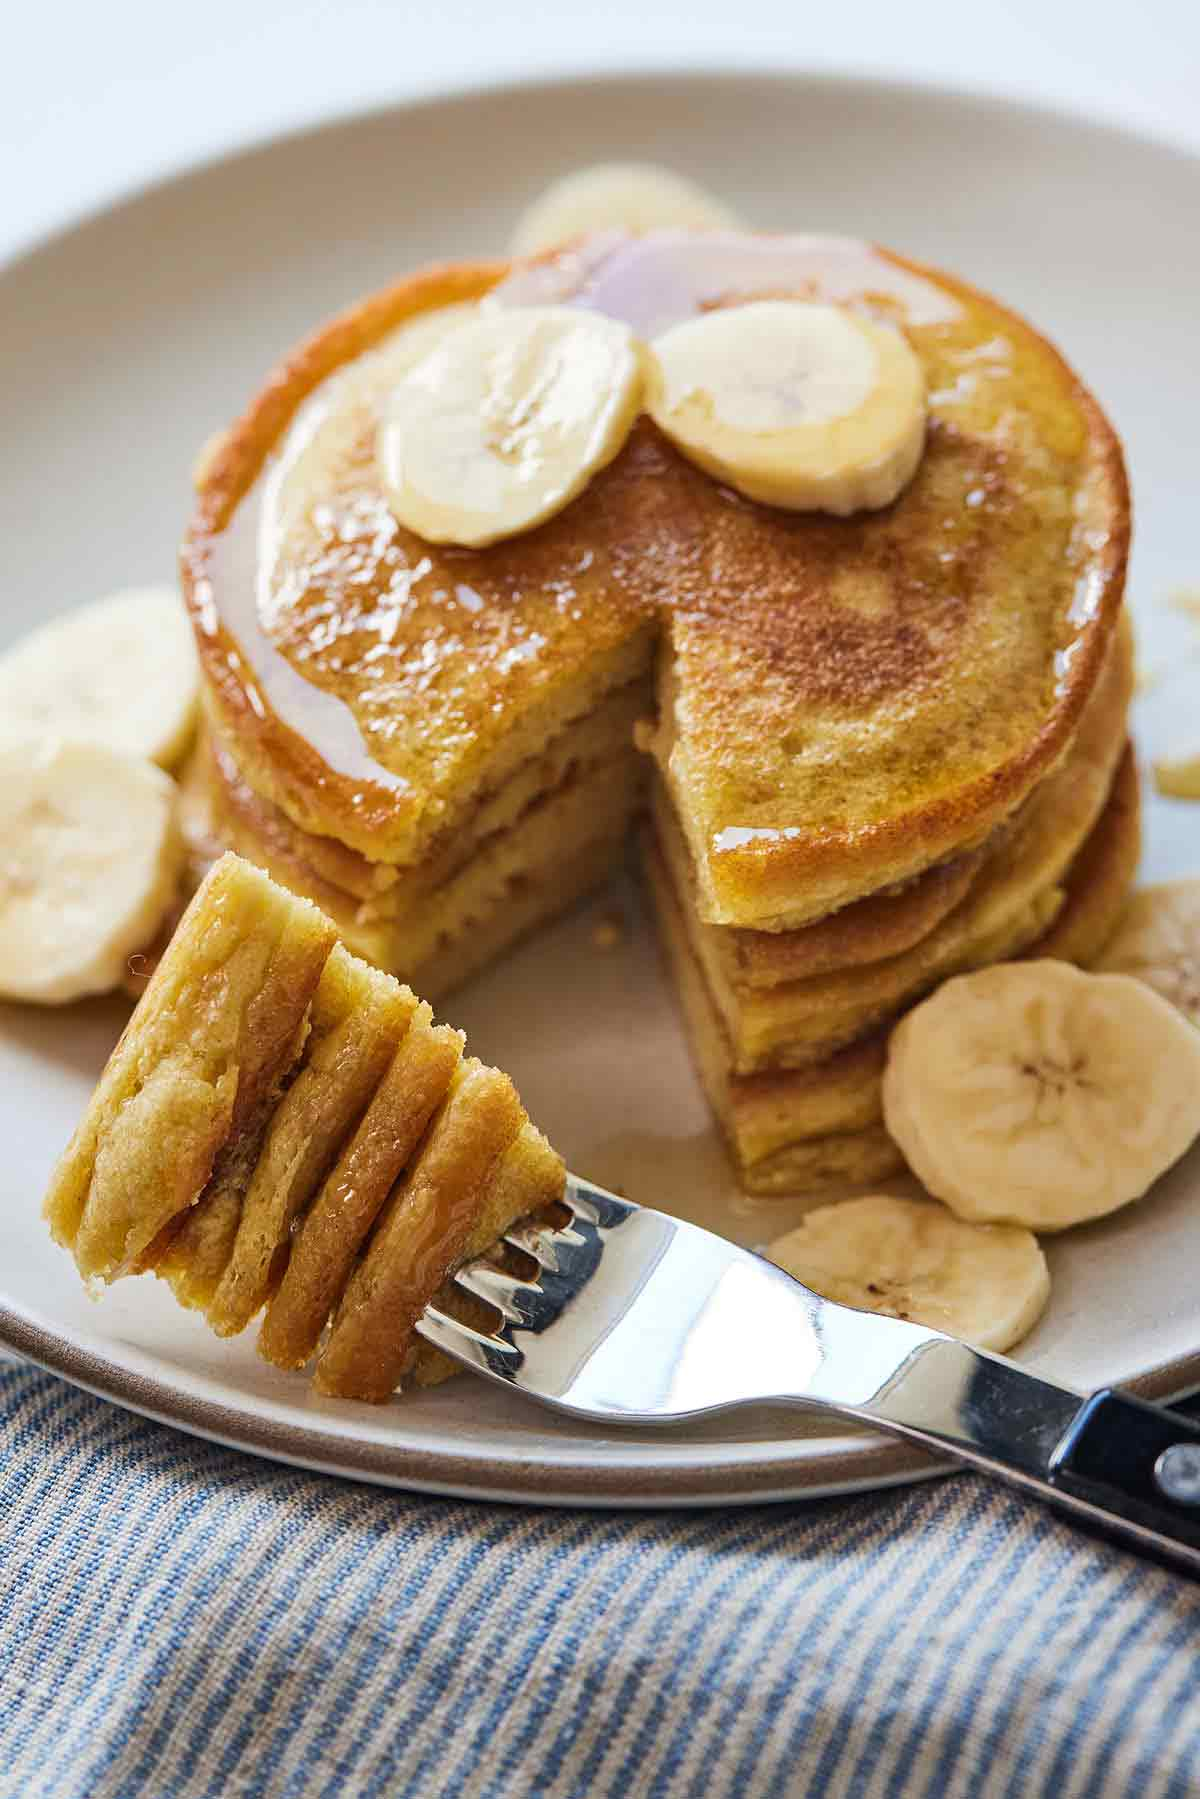 Stack of paleo pancakes with pancakes on top with a wedge cut out, stuck on the fork.